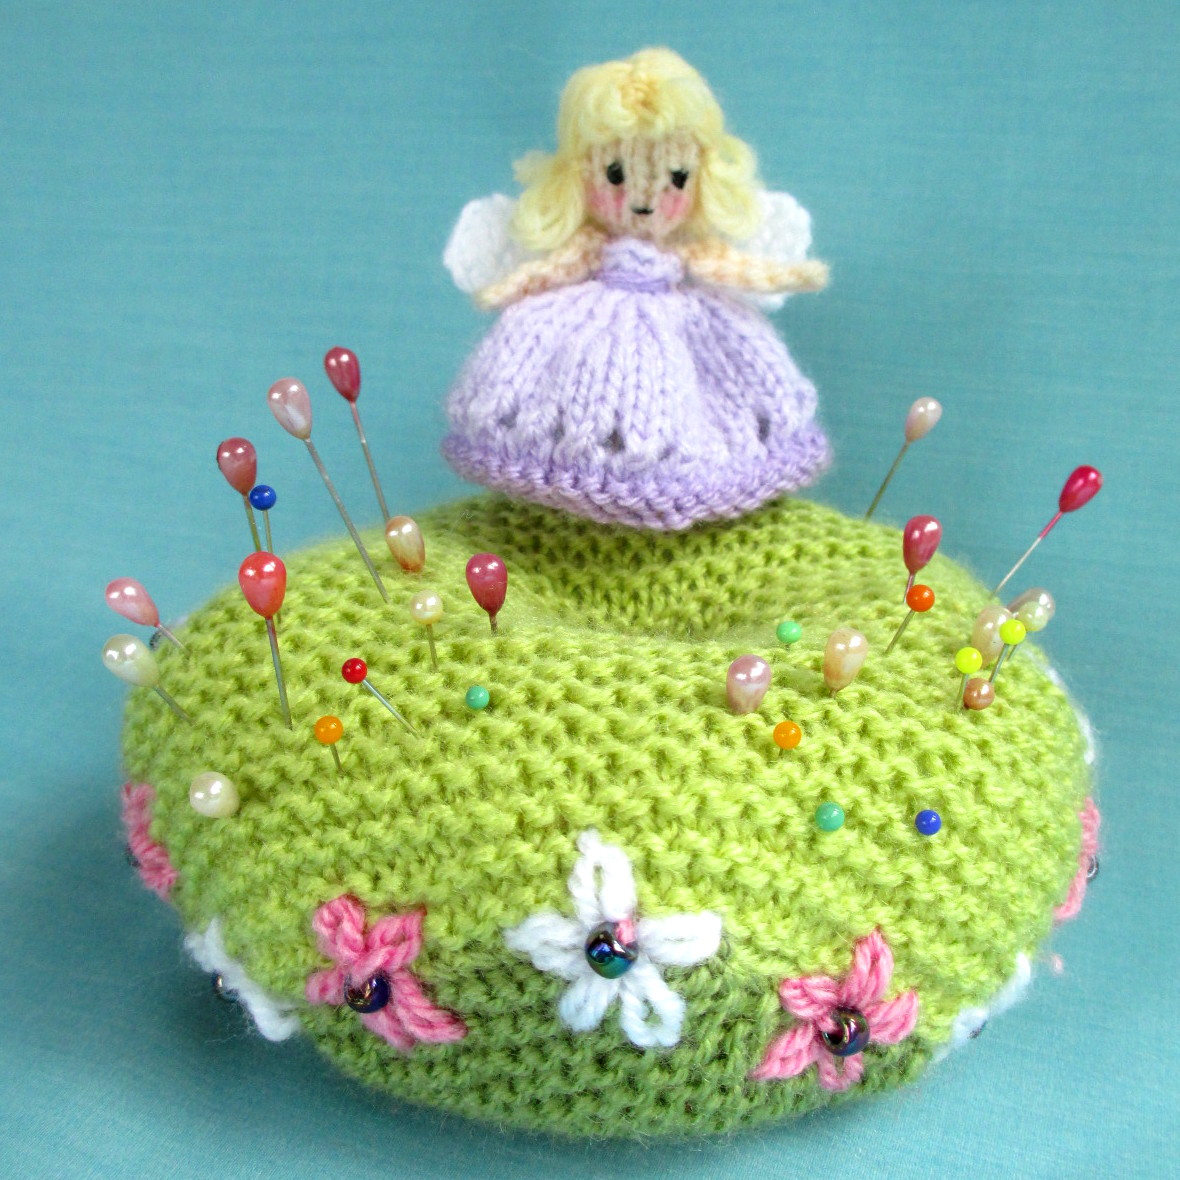 cc0990be6 Flutterby Patch  FREE PATTERN - Fairy and pin cushion